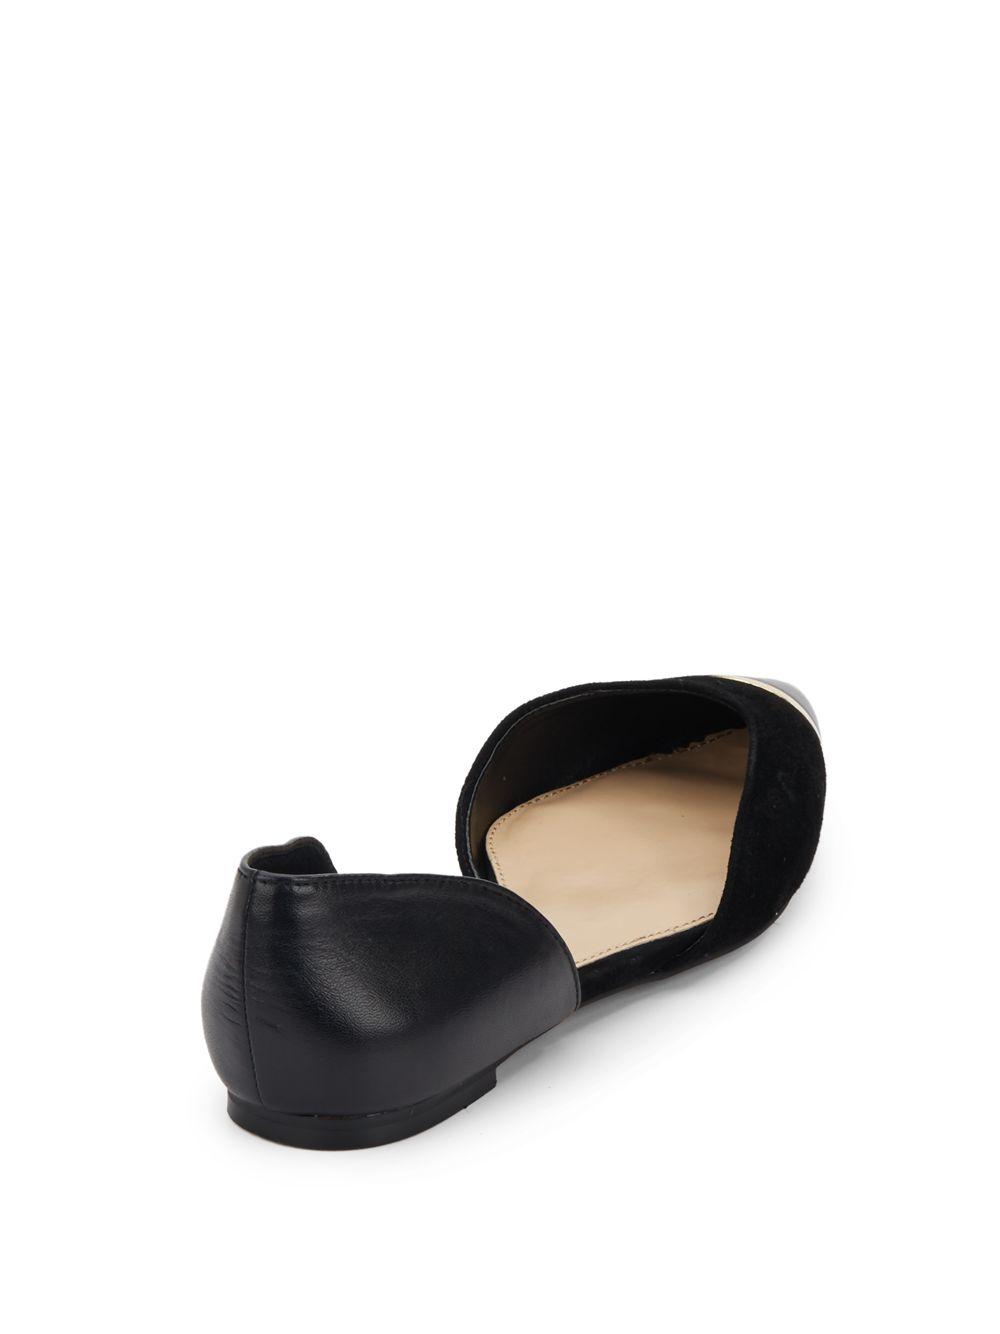 Vince Camuto Hope Leather Flats In Black Lyst